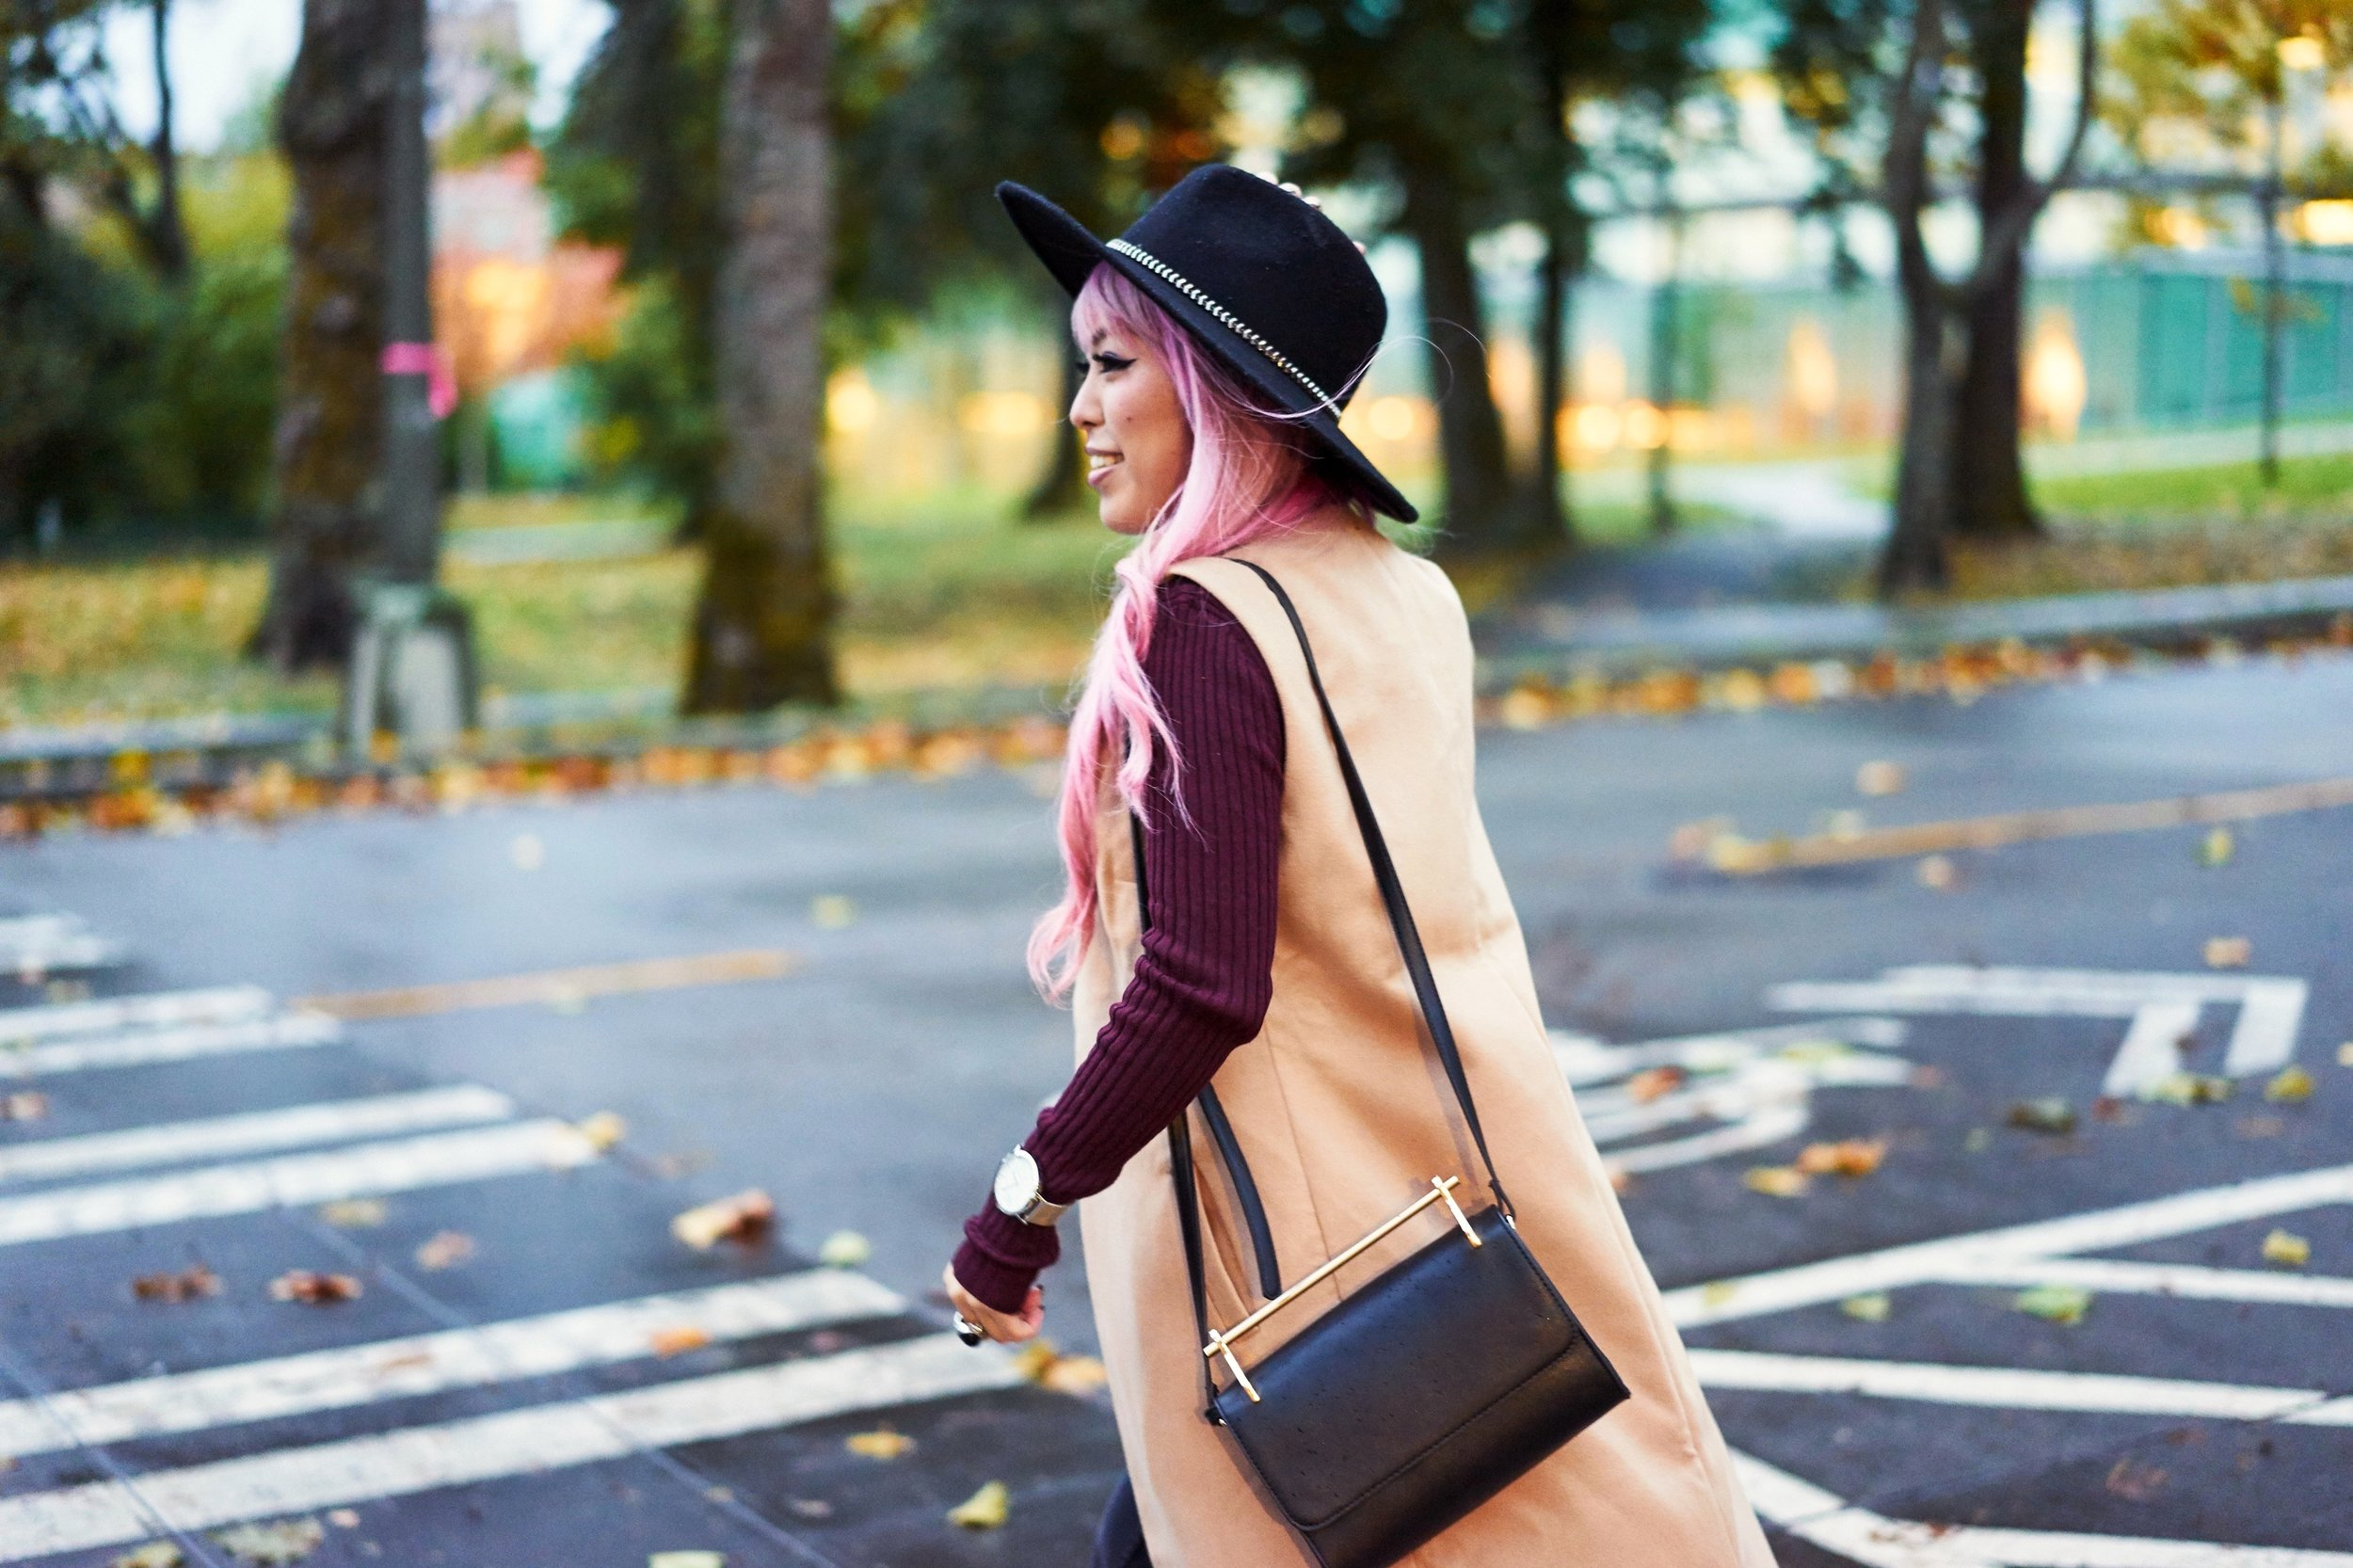 Forever 21 Fedora_Who What Wear : Target Rib Turtleneck_ASOS High Waist Mom Jeans_Ego Floral Print Ankle Boots_Christian Paul Marble Watch_Aika's Love Closet_Seattle Fashion Blogger_Japanese_Pink Hair 8